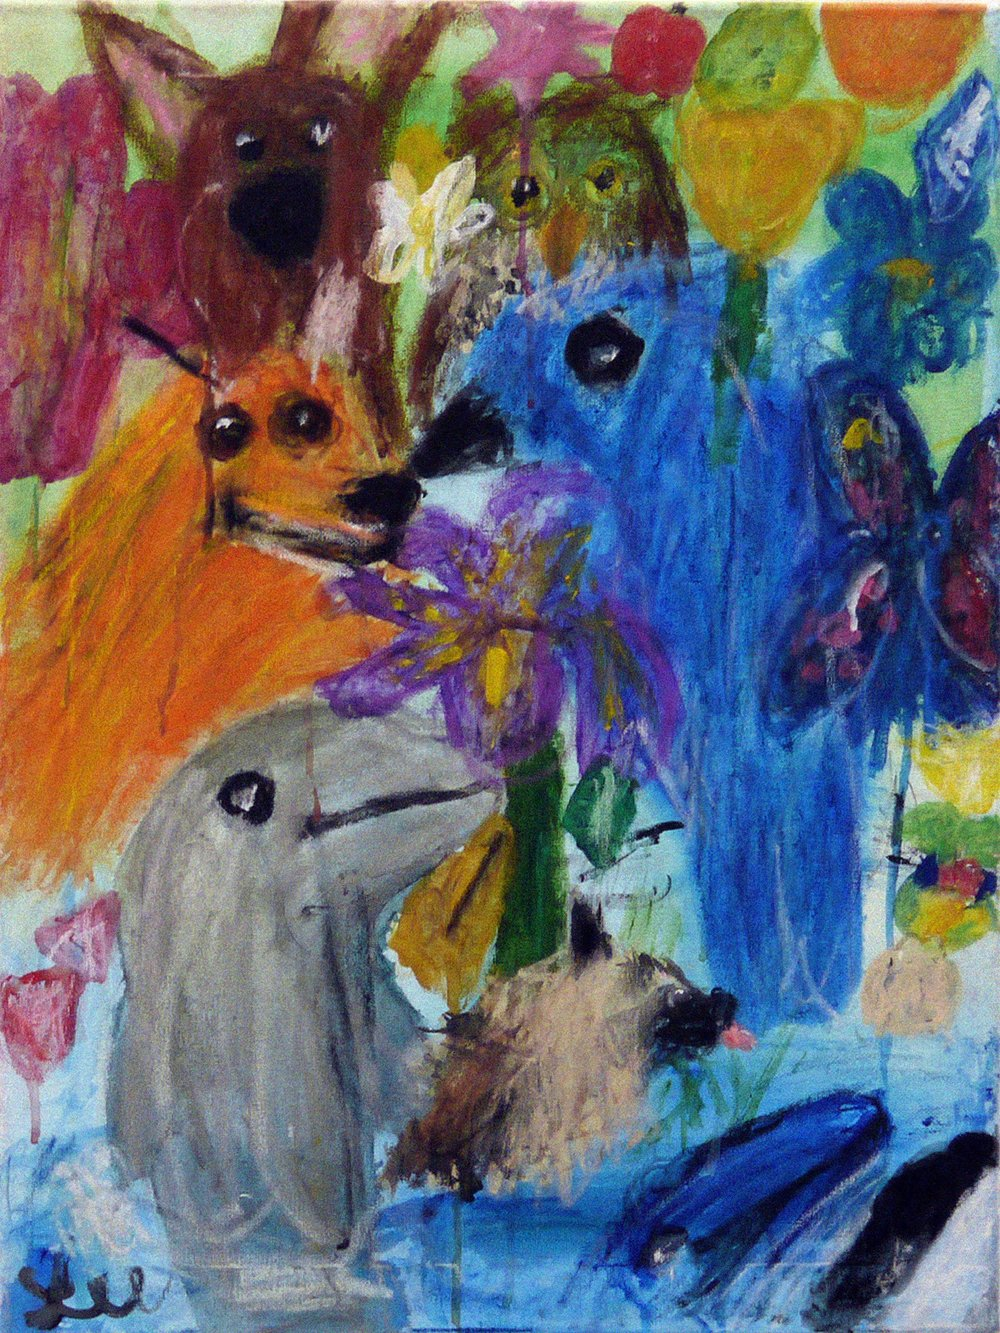 Scooby Doo, A Fox, A Bluejay, a Dolphin - acrylic and oil pastel on canvas - 2017.jpg